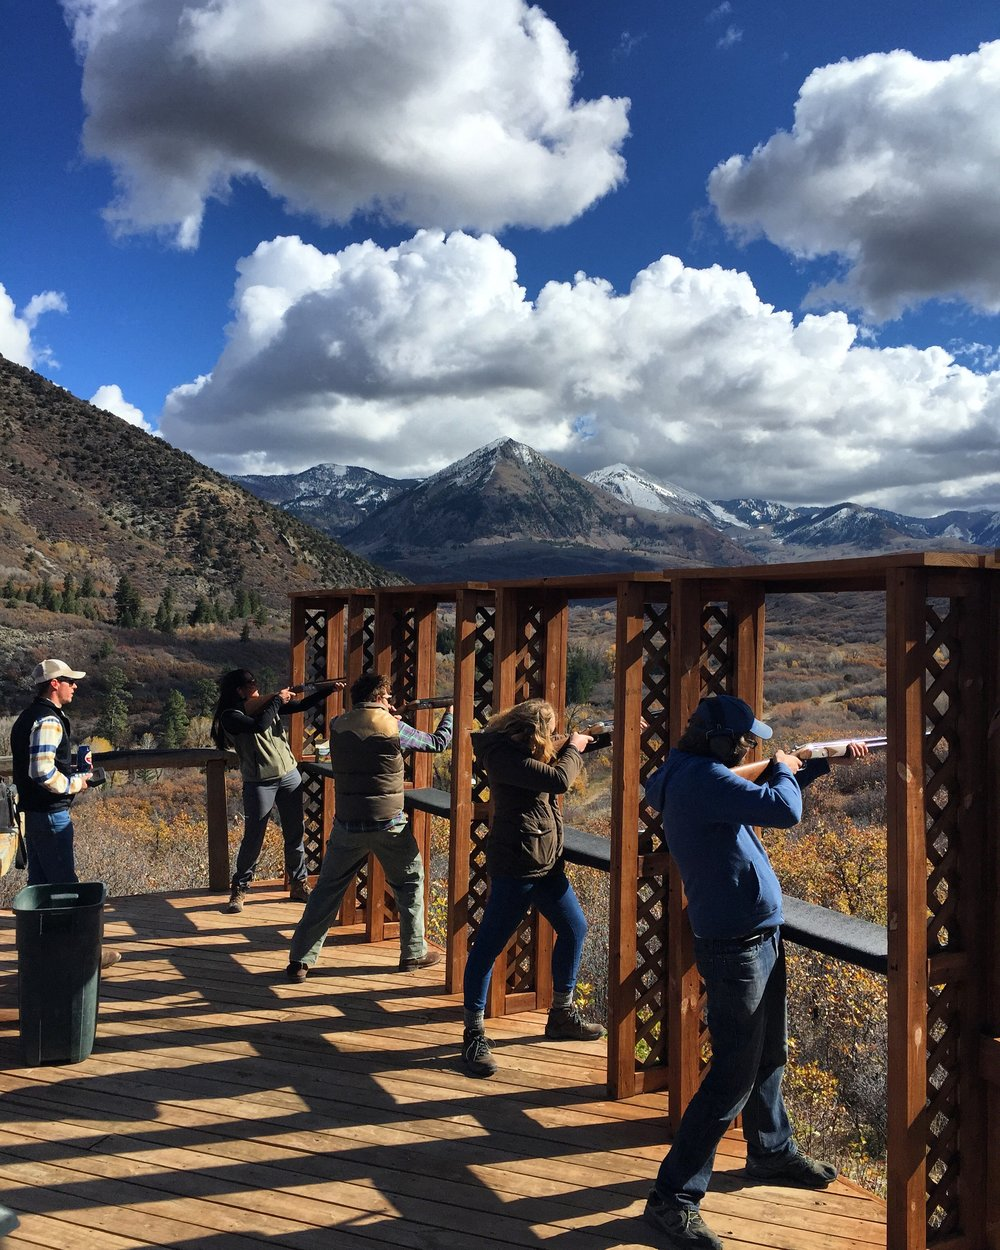 Most Stunning Setting for Sporting Clays